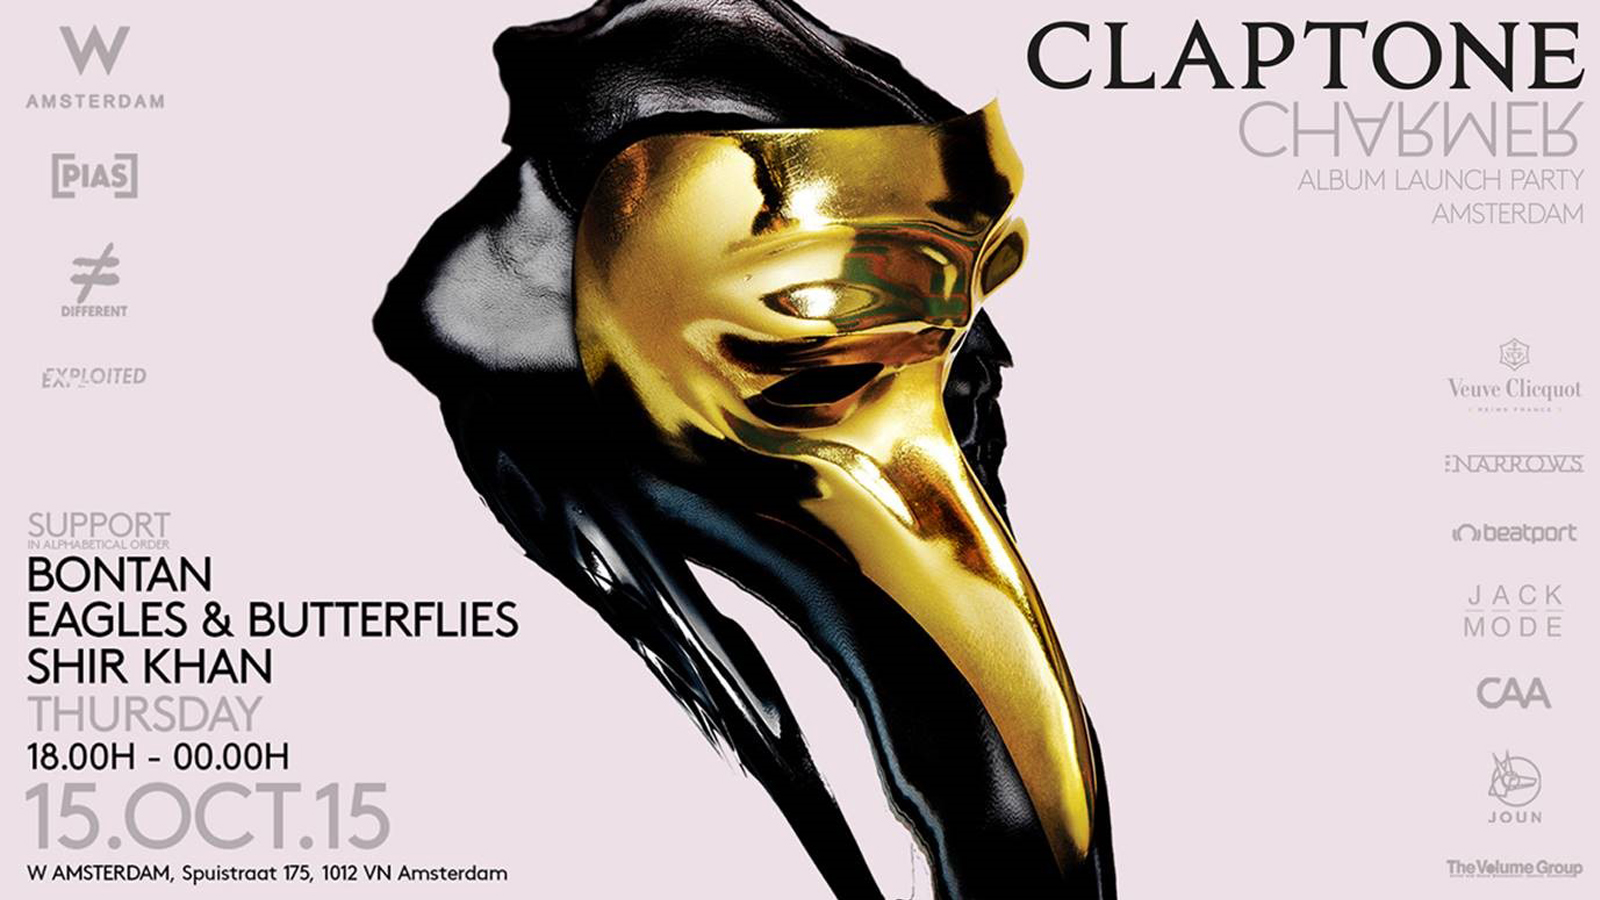 download → Claptone, Eagles & Butterflies, Bontan, Shir Khan - live at Claptone Album Launch Party, W Hotel, ADE 2015 - 15-Oct-2015